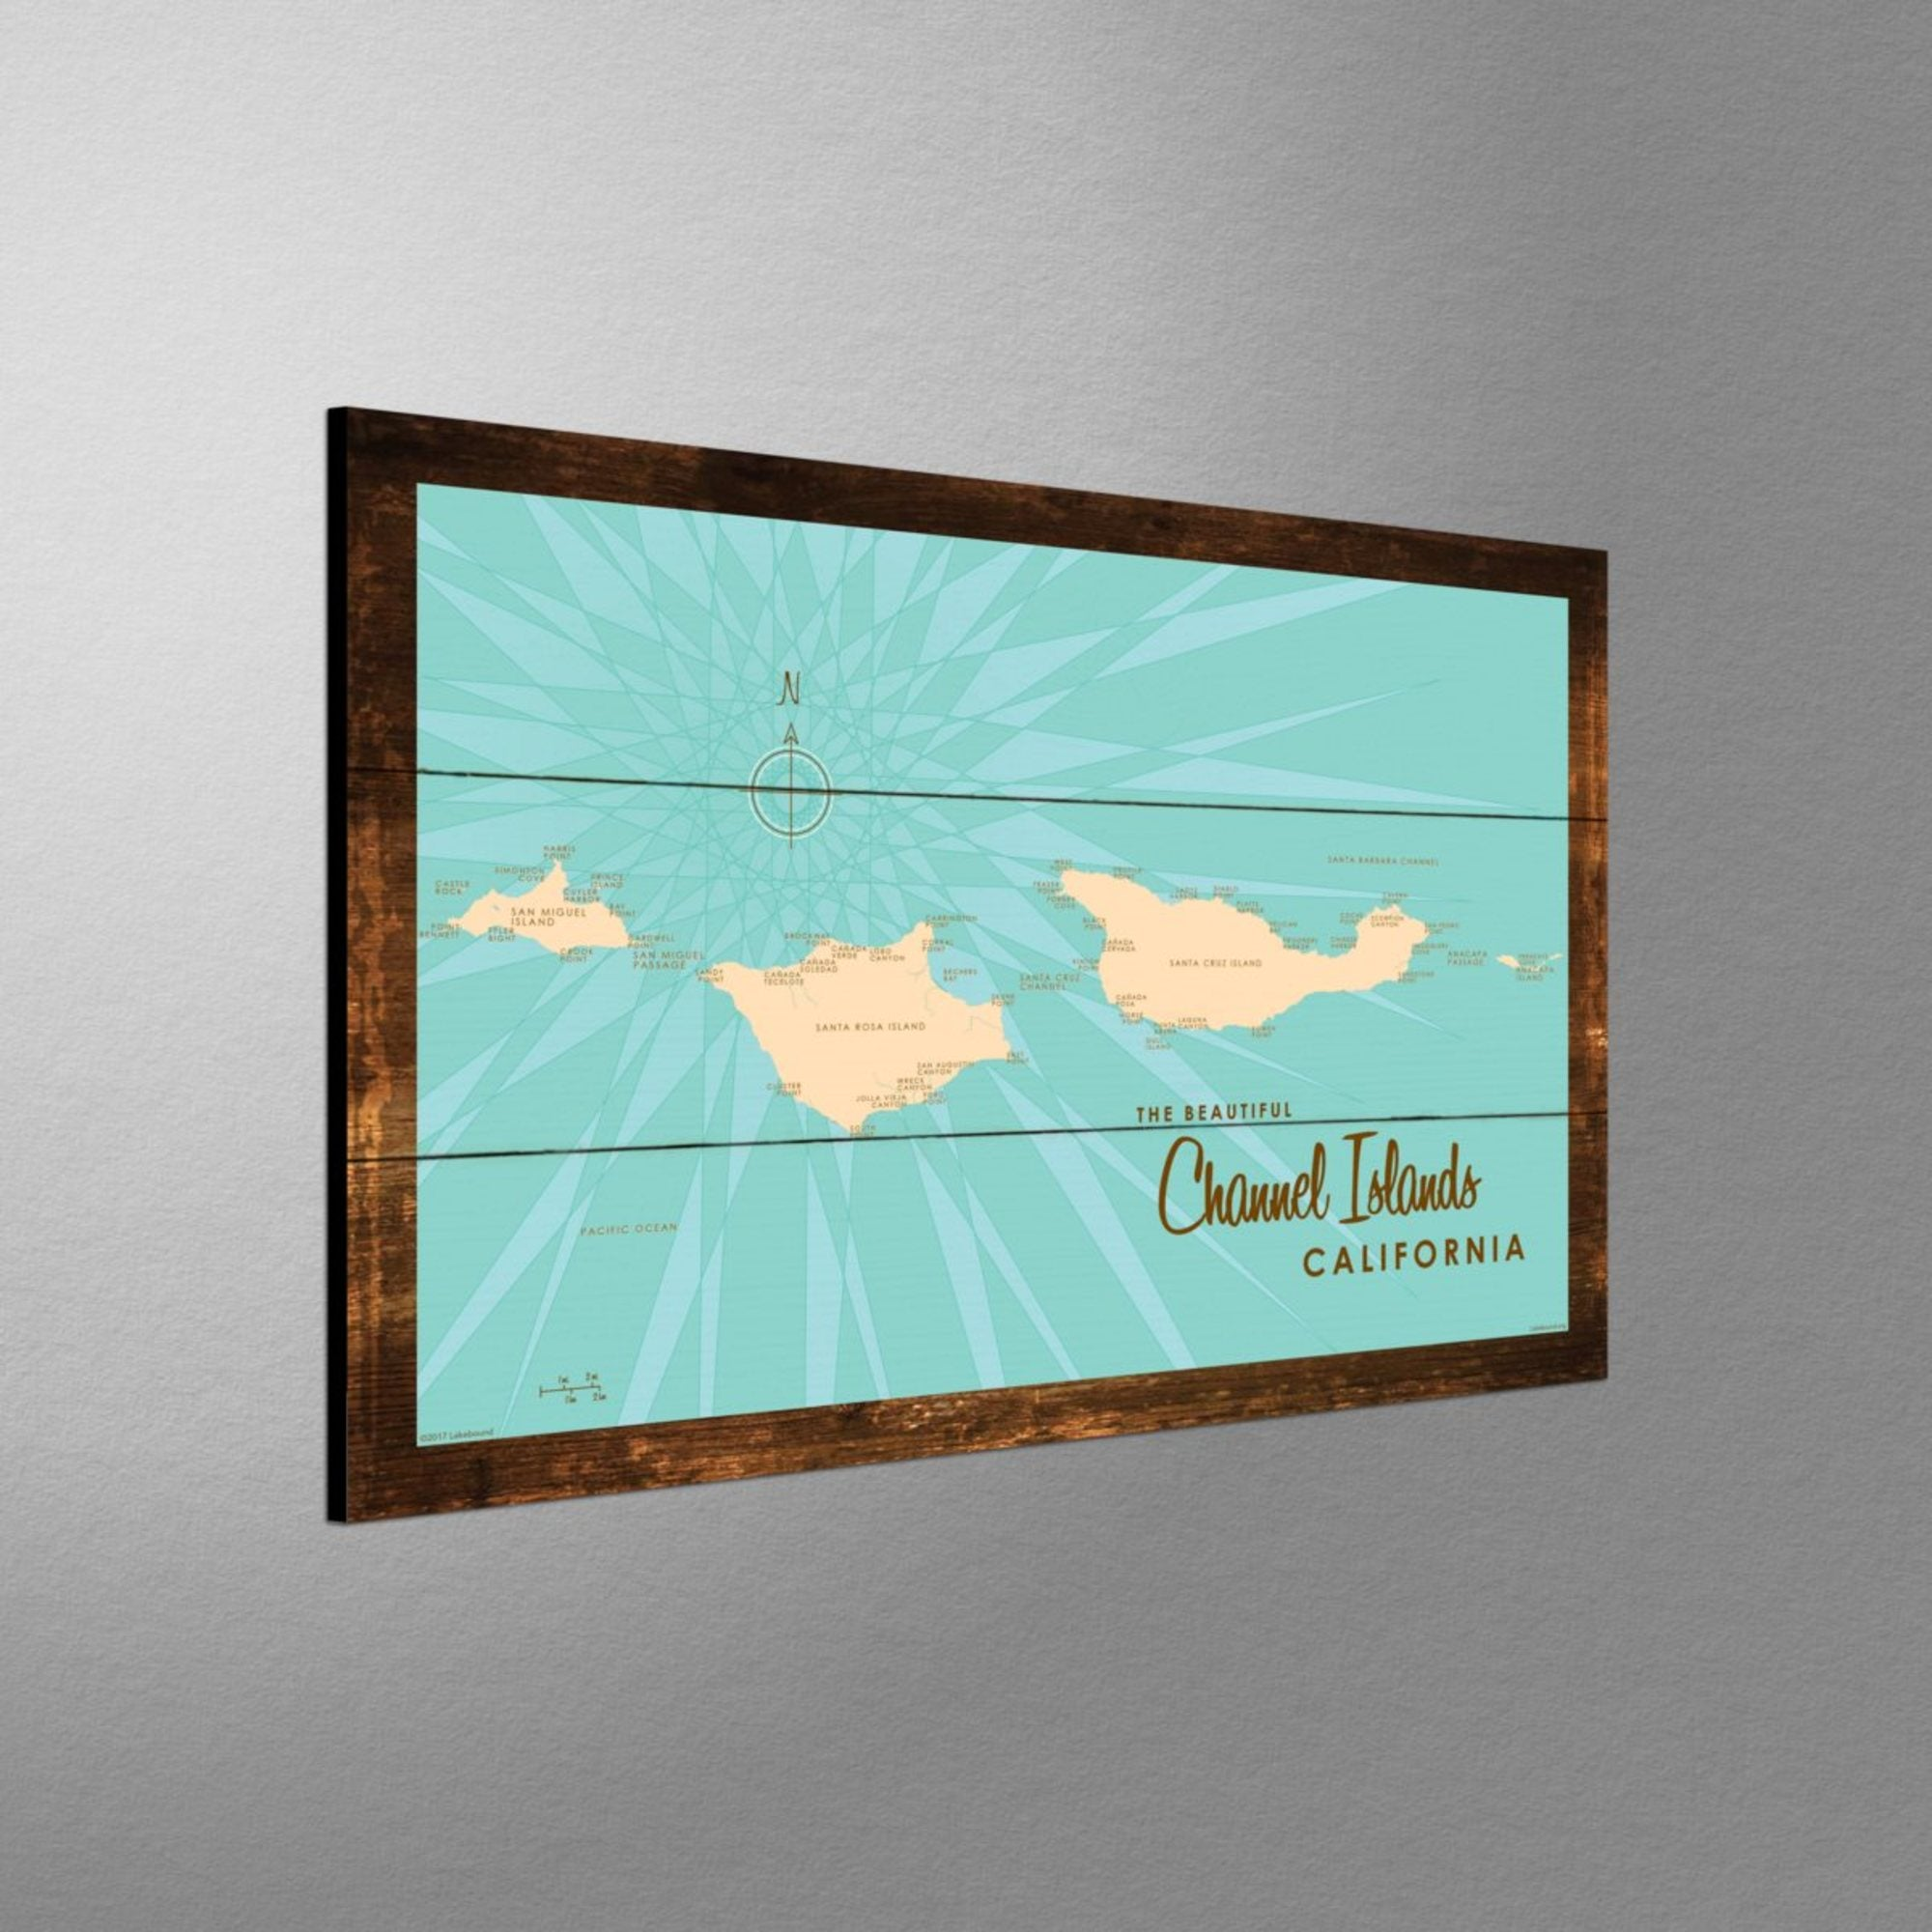 Channel Islands California, Rustic Wood Sign Map Art